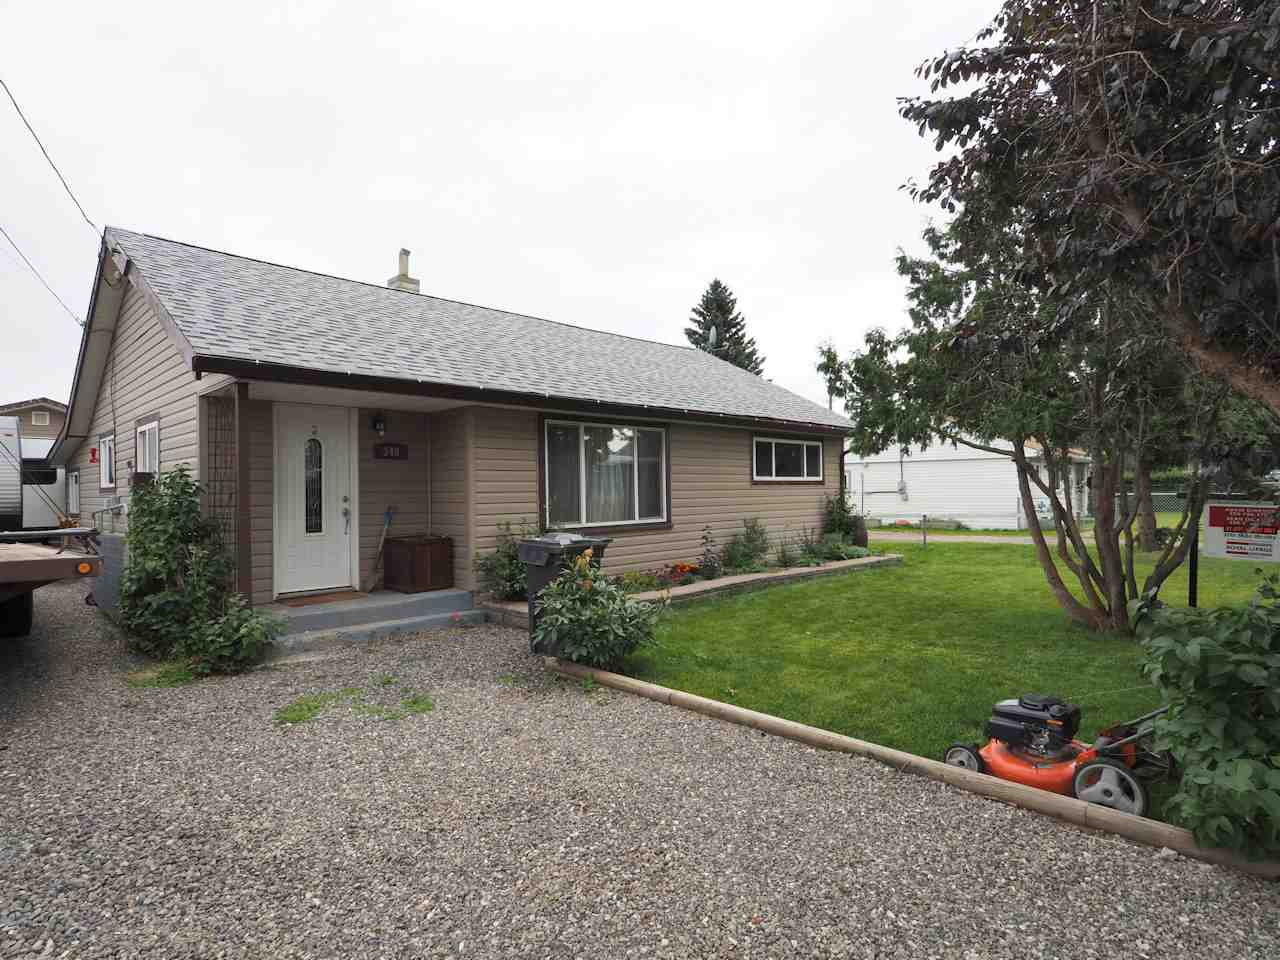 Main Photo: 340 1ST Street in 100 Mile House: 100 Mile House - Town House for sale (100 Mile House (Zone 10))  : MLS®# R2486064